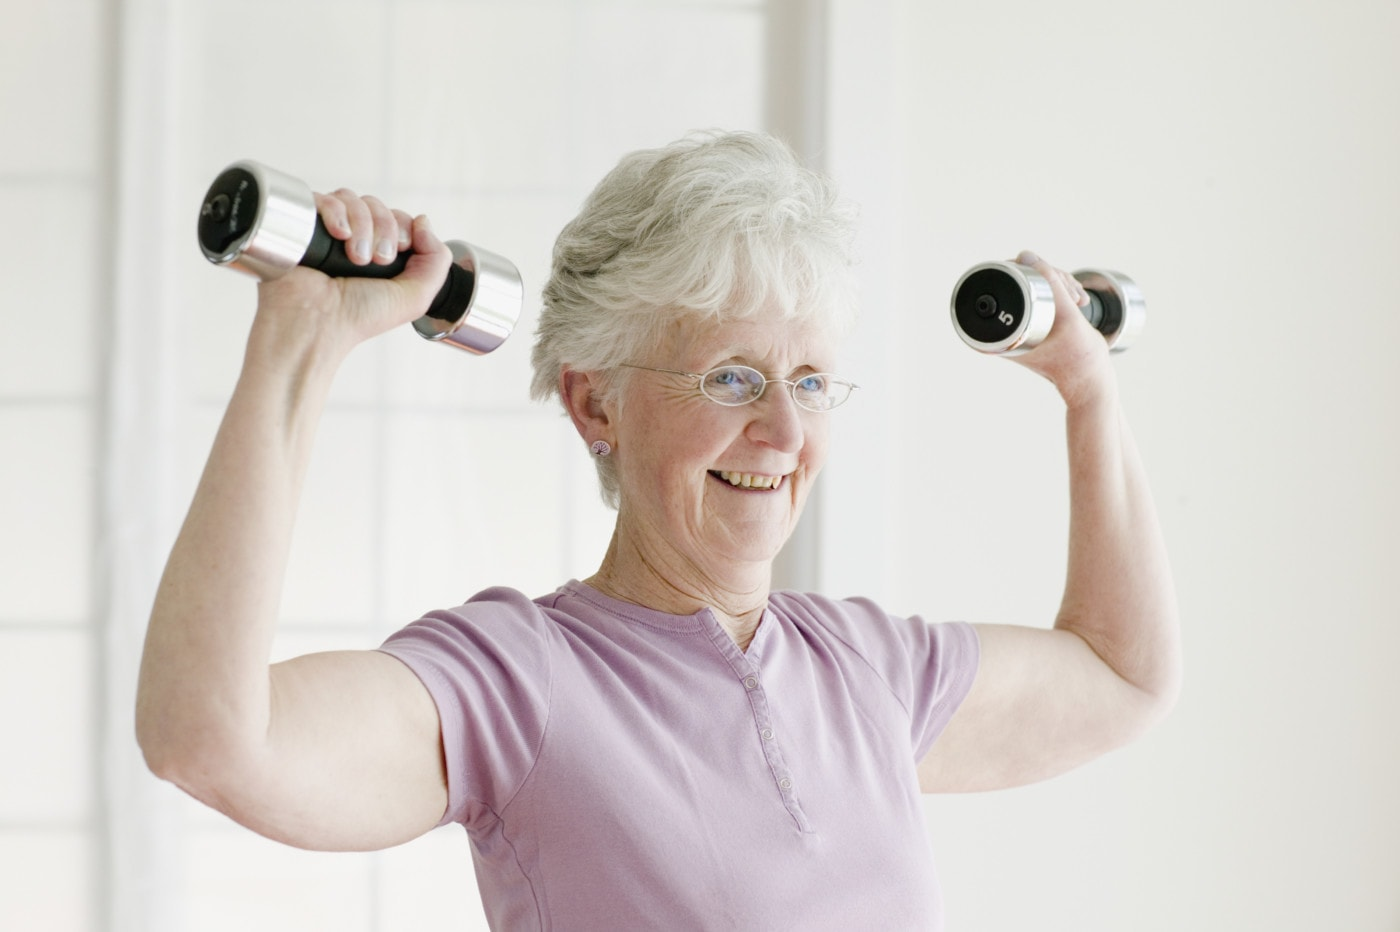 Cheadle Hulme Osteopath / Weight training and Osteoporosis / Alan Johnson  Osteopathy